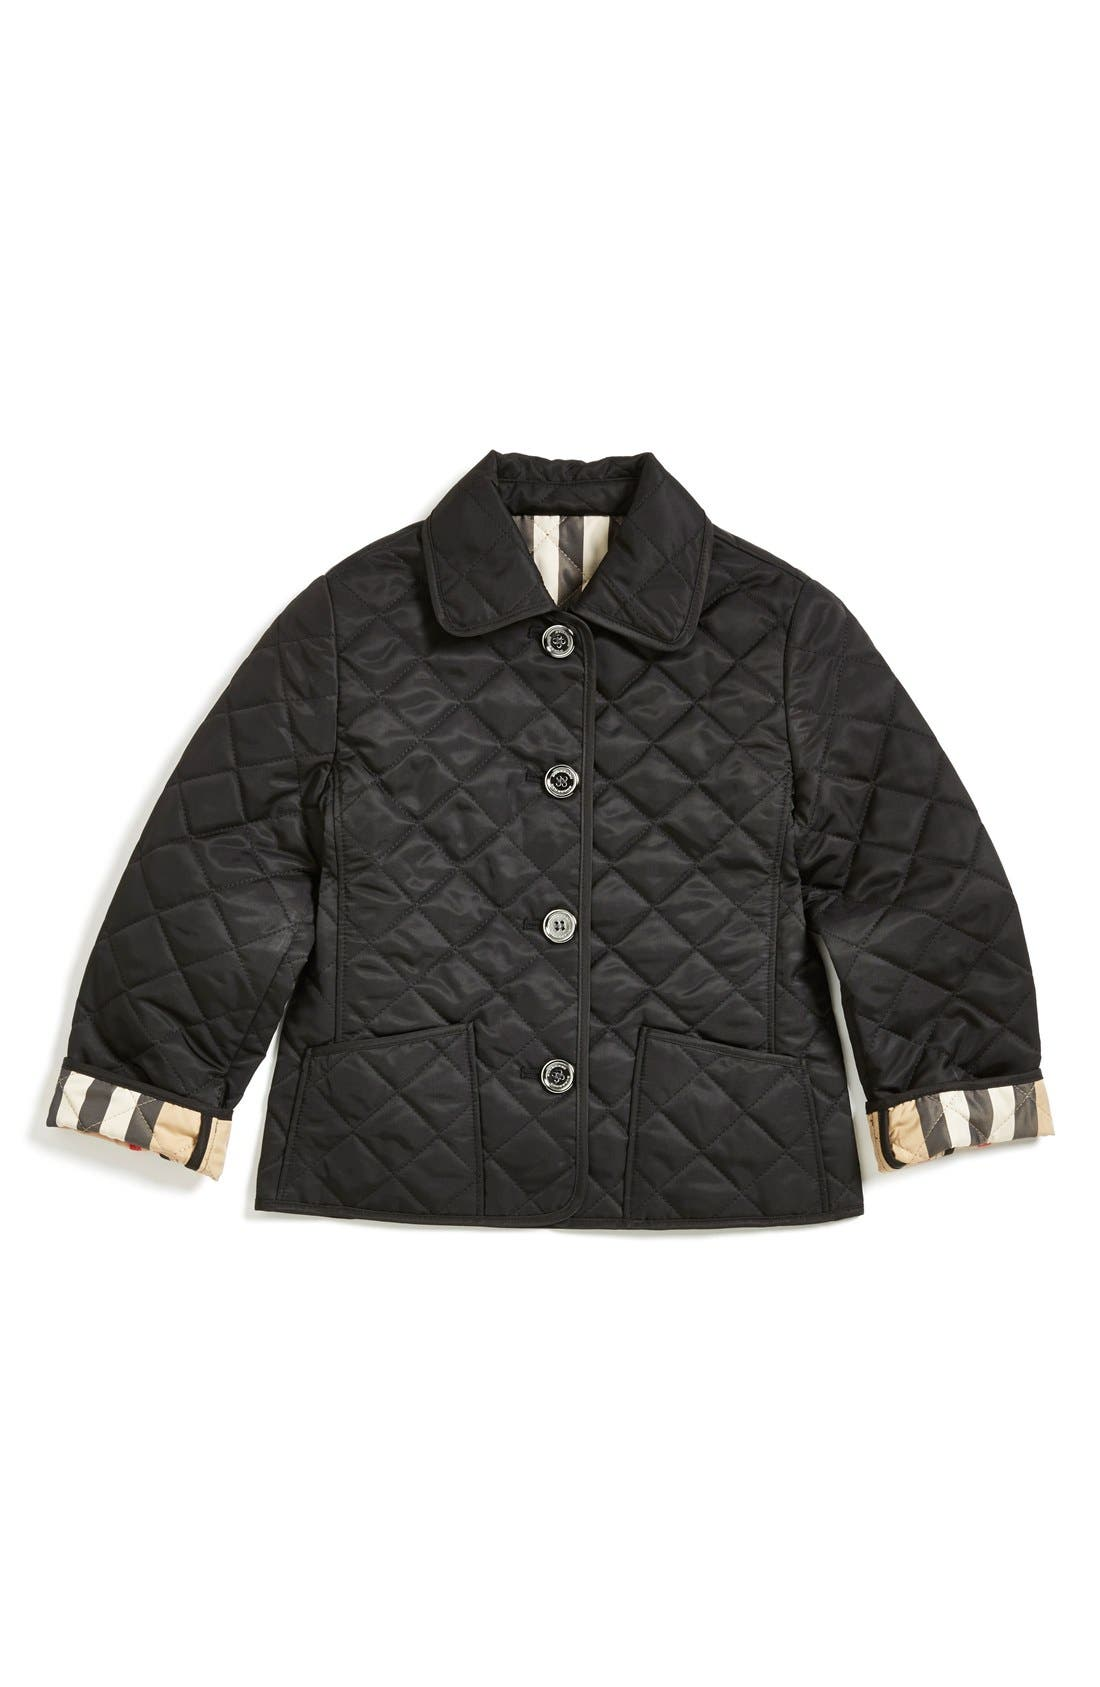 Alternate Image 1 Selected - Burberry Quilted Check Trim Coat (Little Girls & Big Girls)